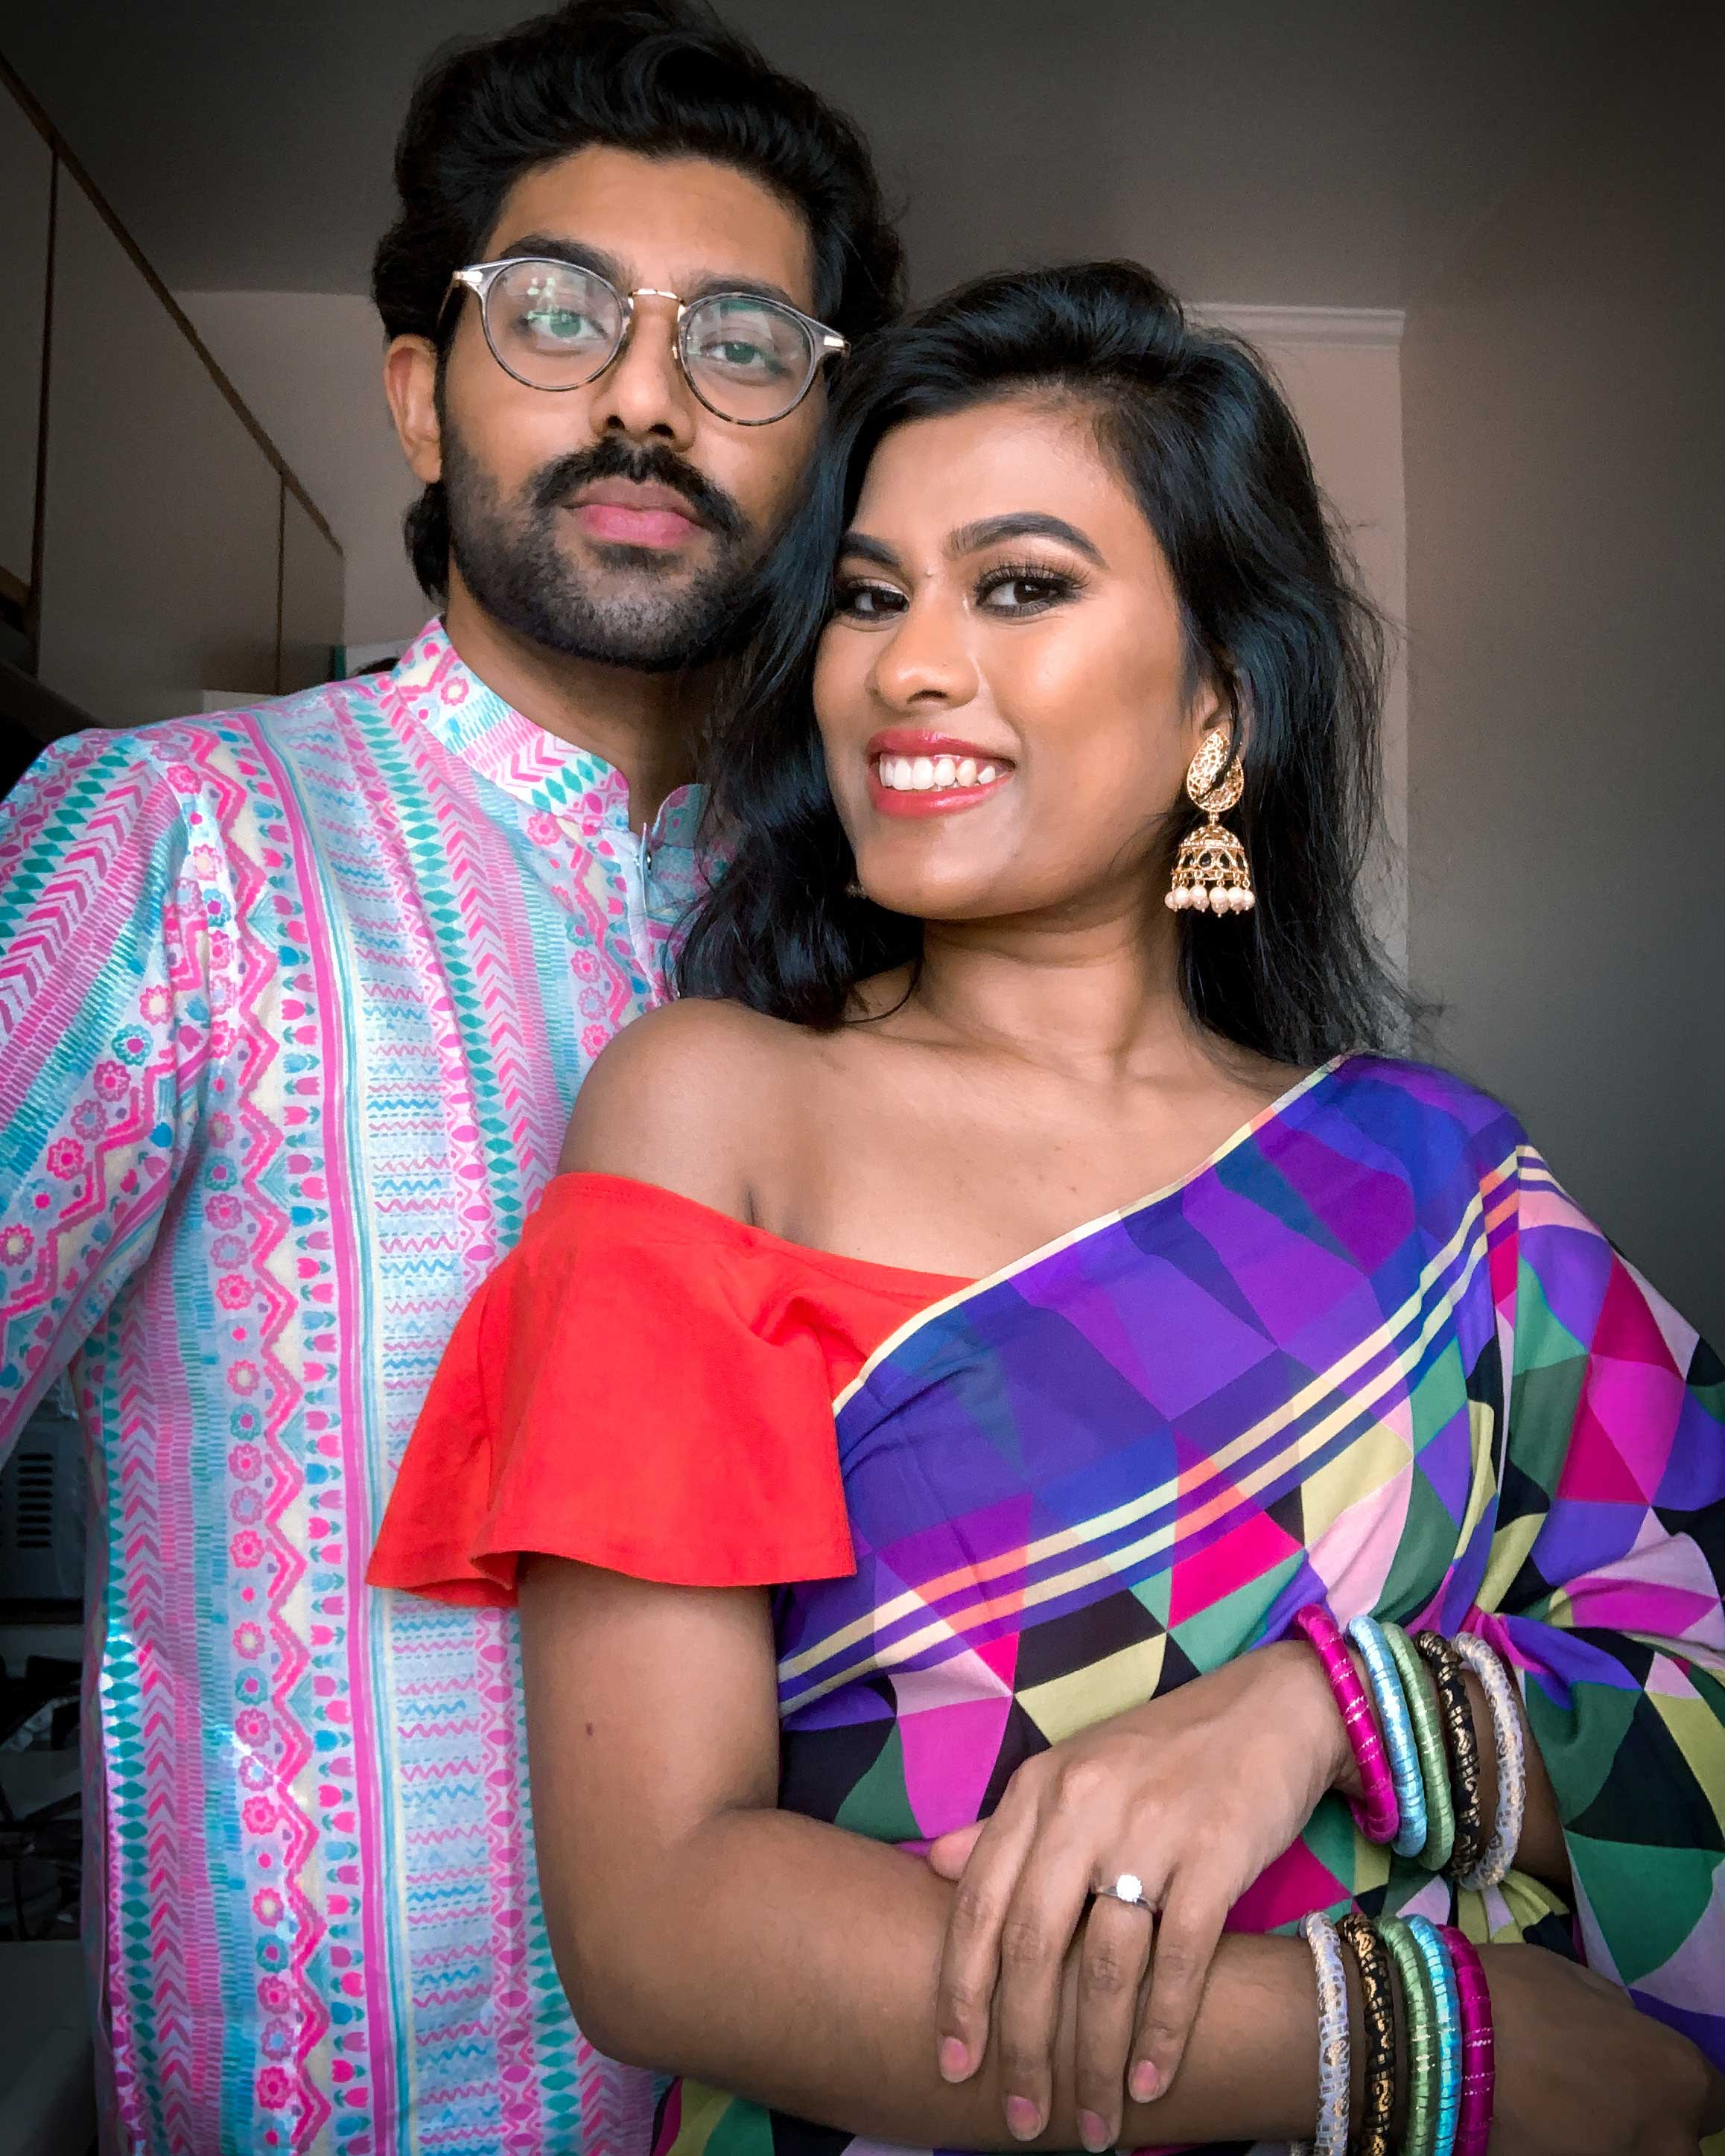 Romy and Taz Chowdhury (@that_brown_couple) often post about their relationship and their Bengali heritage. (Chowdhury family)